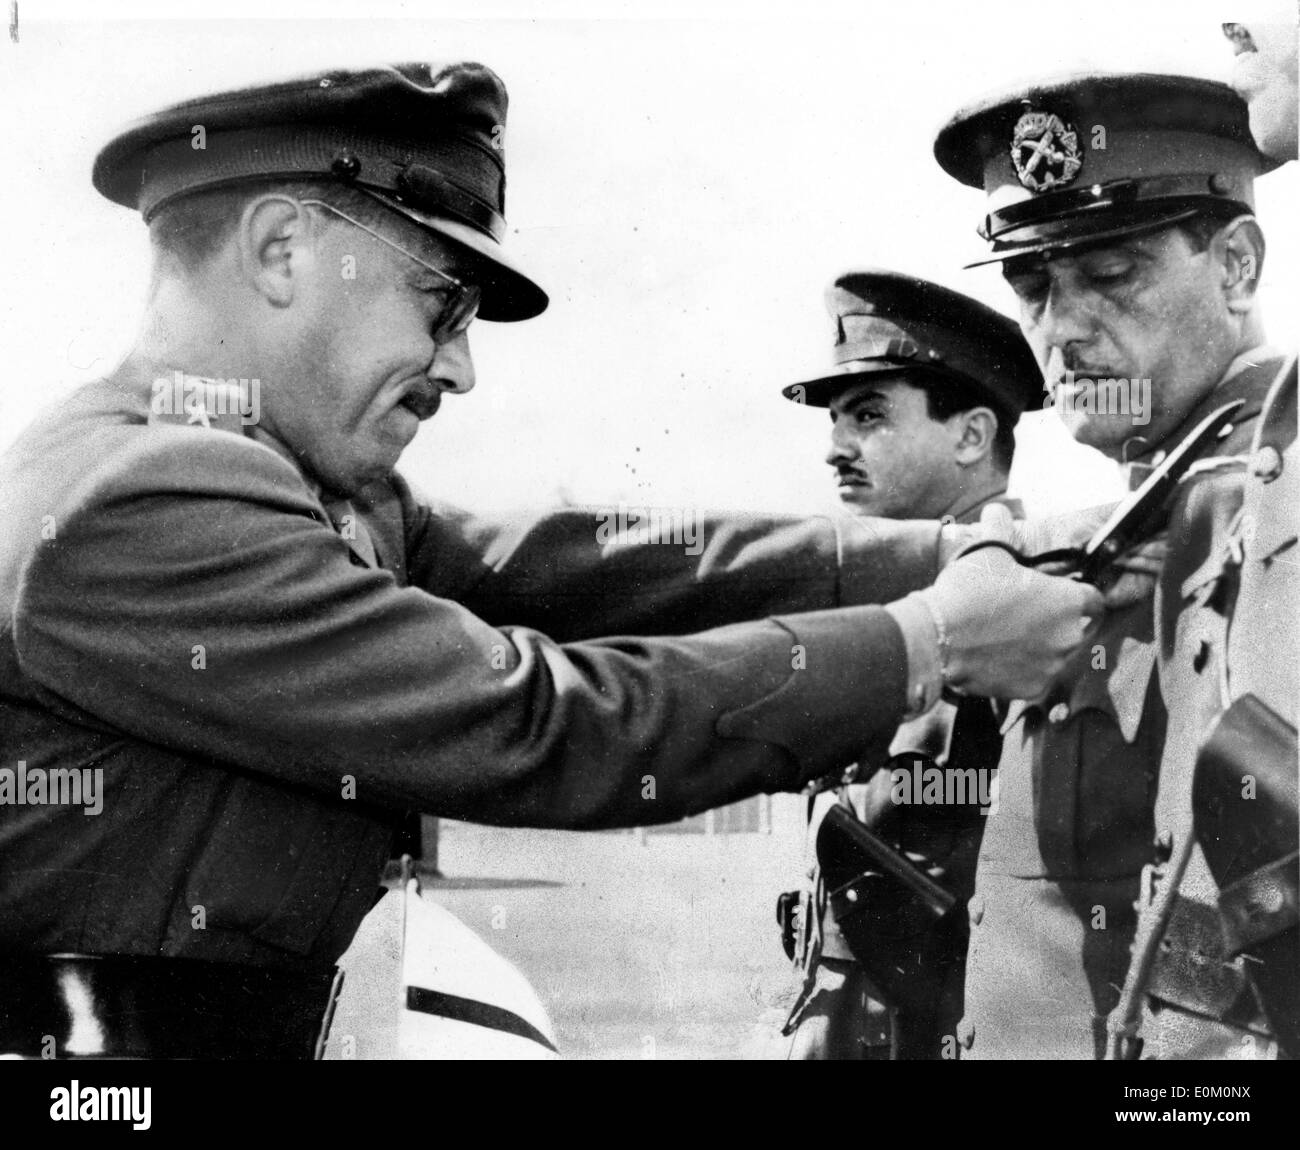 Feb 13, 1953; Cairo, Egypt; General Amer was sentenced to be stripped of his rank and Colonel Farah was acquitted. The charges were of desertion, inciting to revolt and trafficking in arms with Israel. General Amer was the officerwhom ex King Farouk tried to force last year into the presidency of the Officers' Club at Cairo. Gen. Amer was caught while trying to escape to Libya after the Neguib coup d'etat. The picture shows an officer stripping General HUSSEIN SIRRY AMER during the announcement of the Court Martial sentence in Cairo. - Stock Image